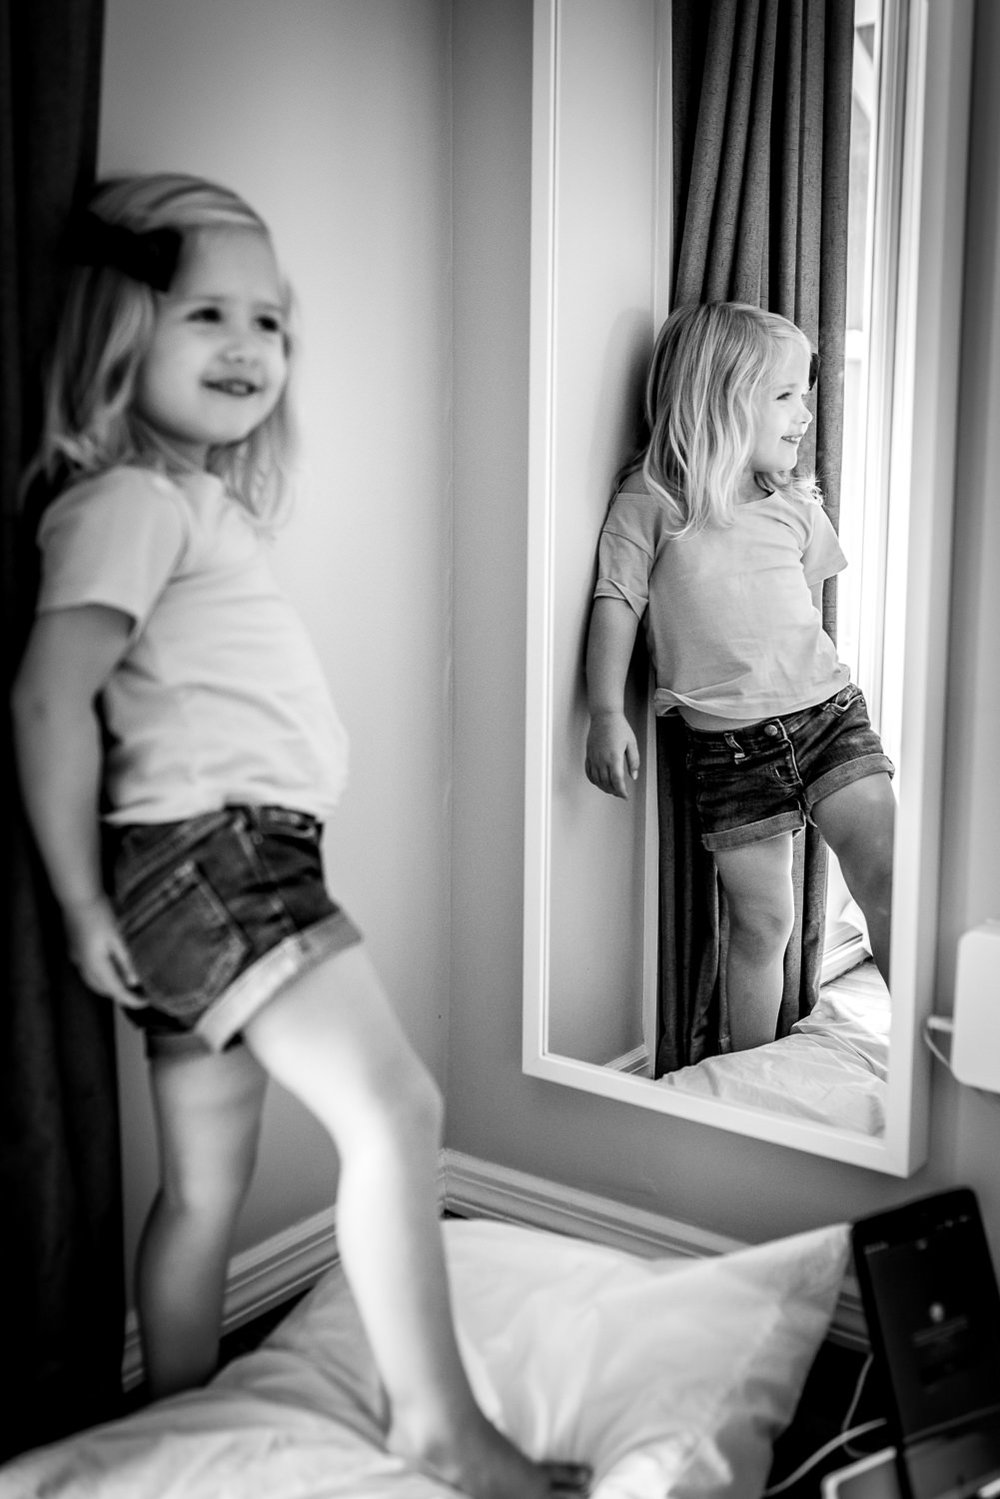 big-sister-smiles-and-makes-faces-in-mirror-at-lifestyle-photo-session